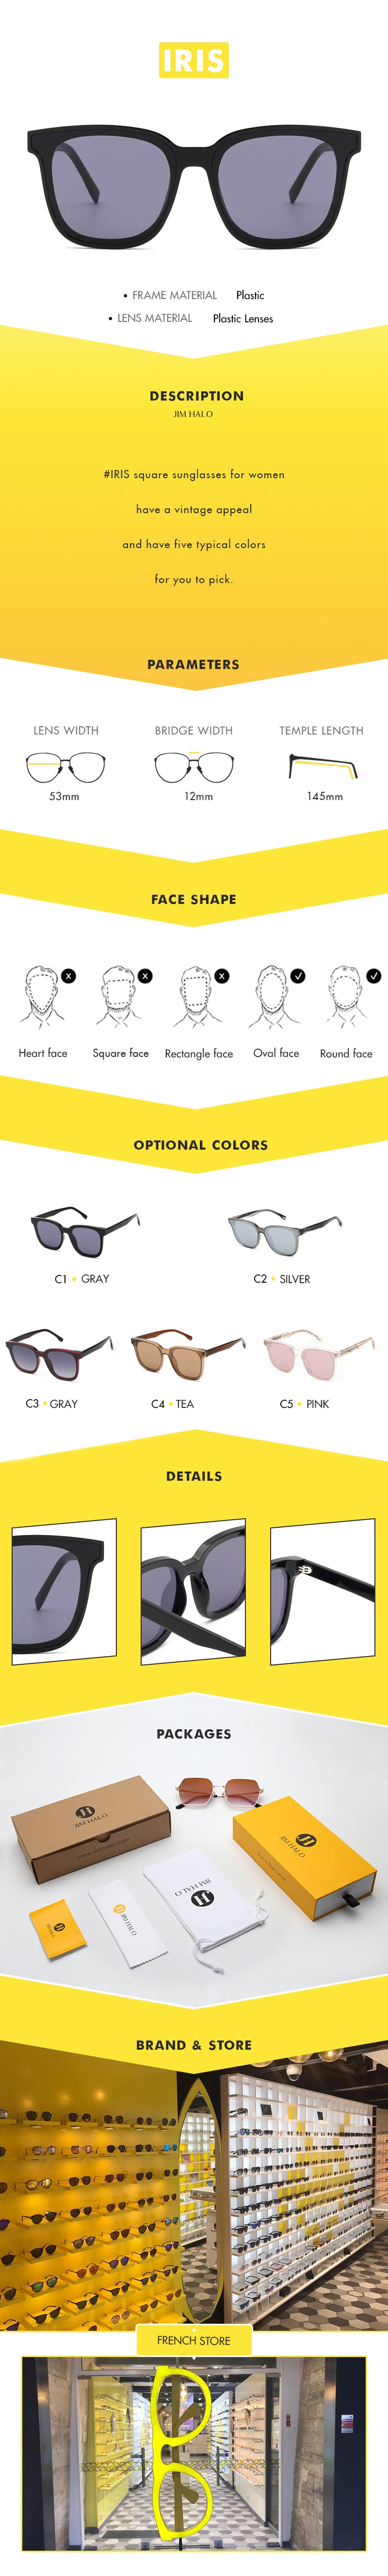 #IRIS square sunglasses for women have a vintage appeal and have five typical colors for you to pick.